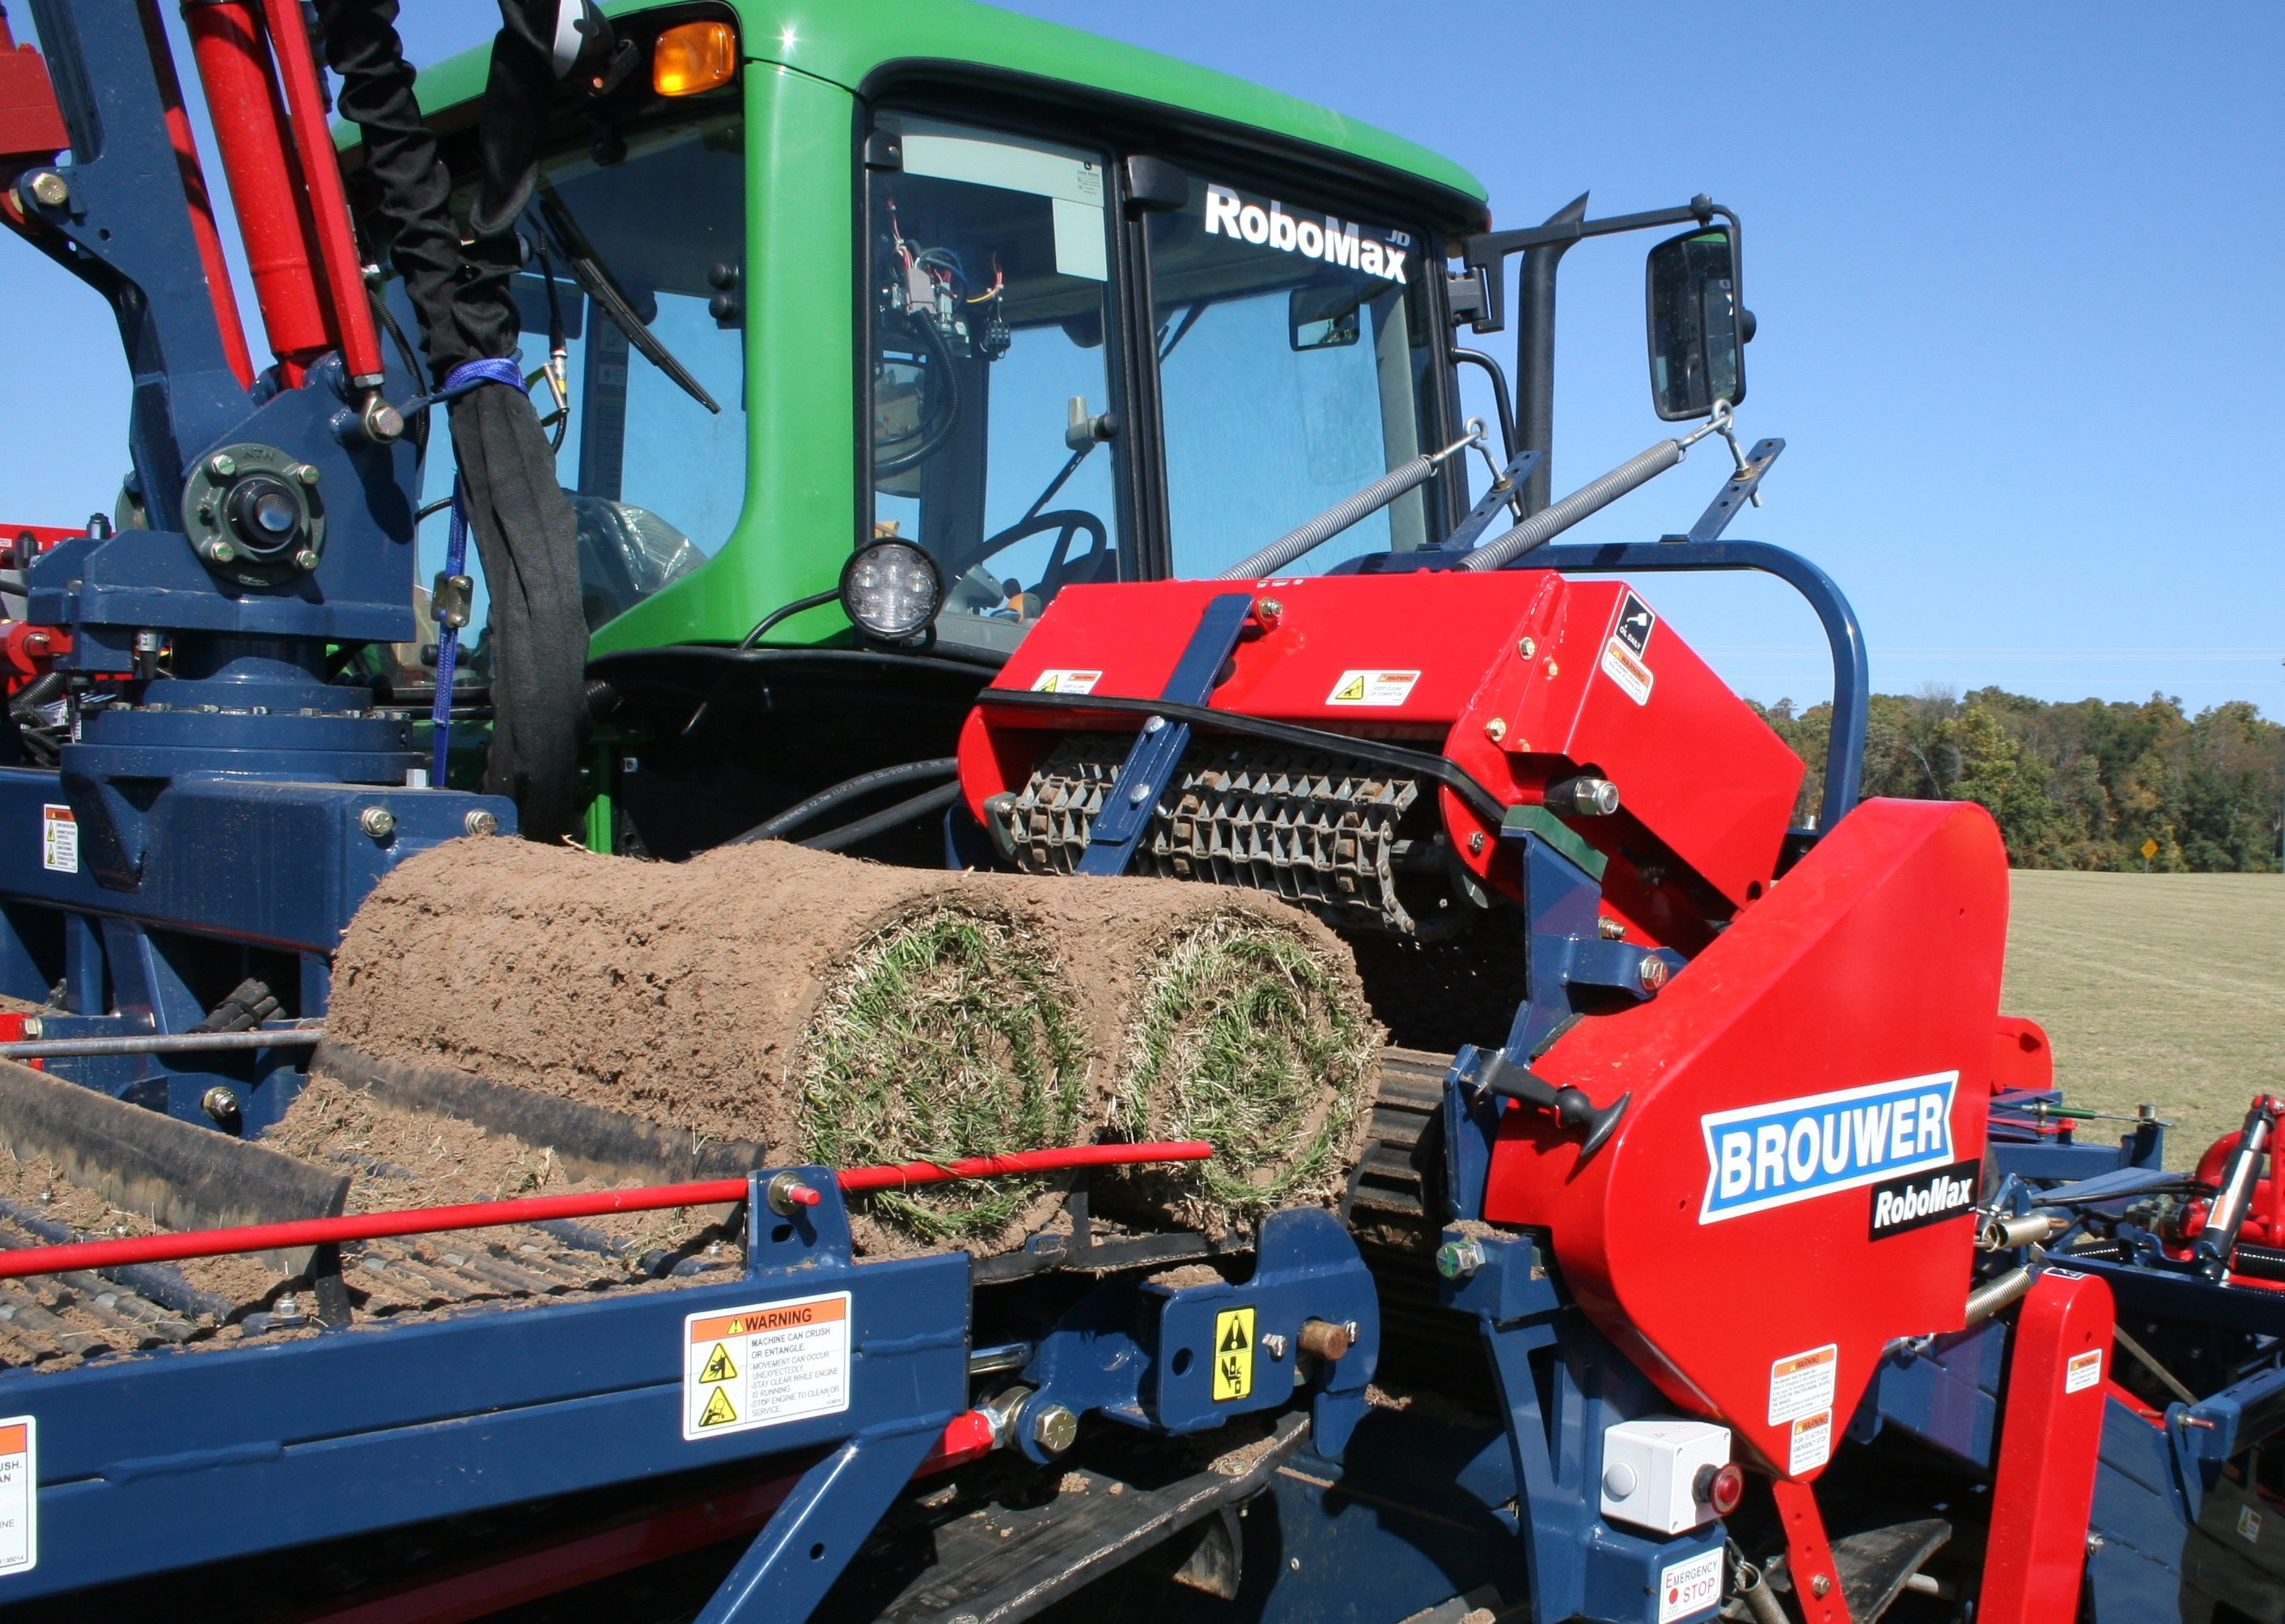 Sod harvesting equipment